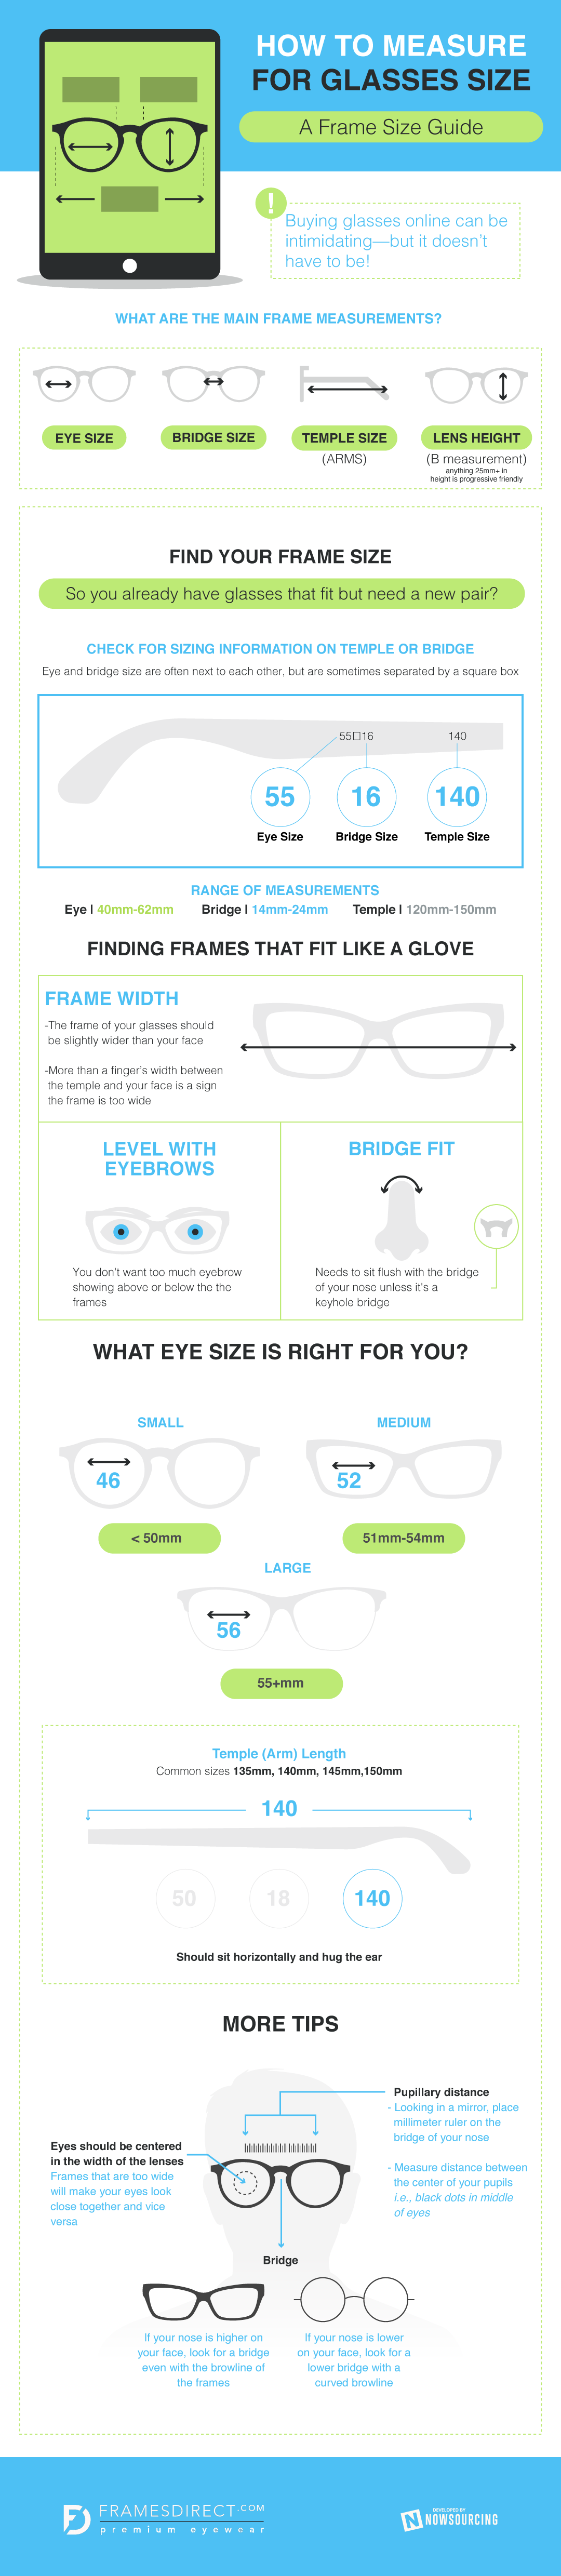 How To Measure For Glasses Size [Infographic]